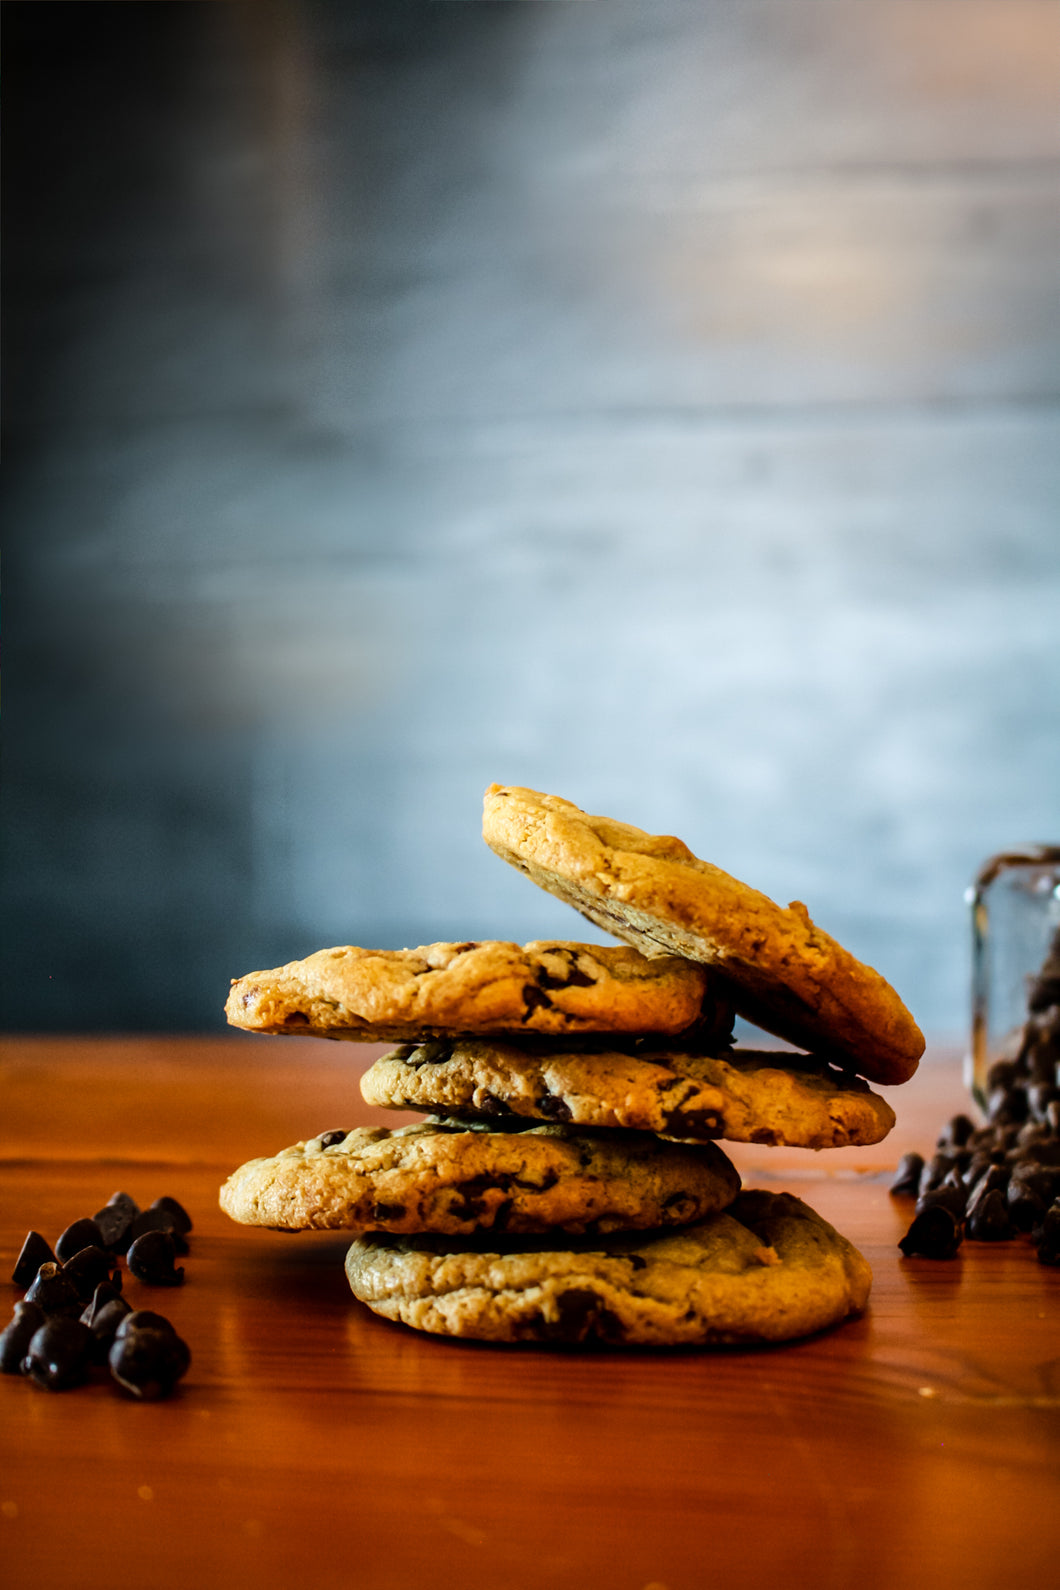 Chocolate Chip Cookies - 1 Dozen Freshly Baked